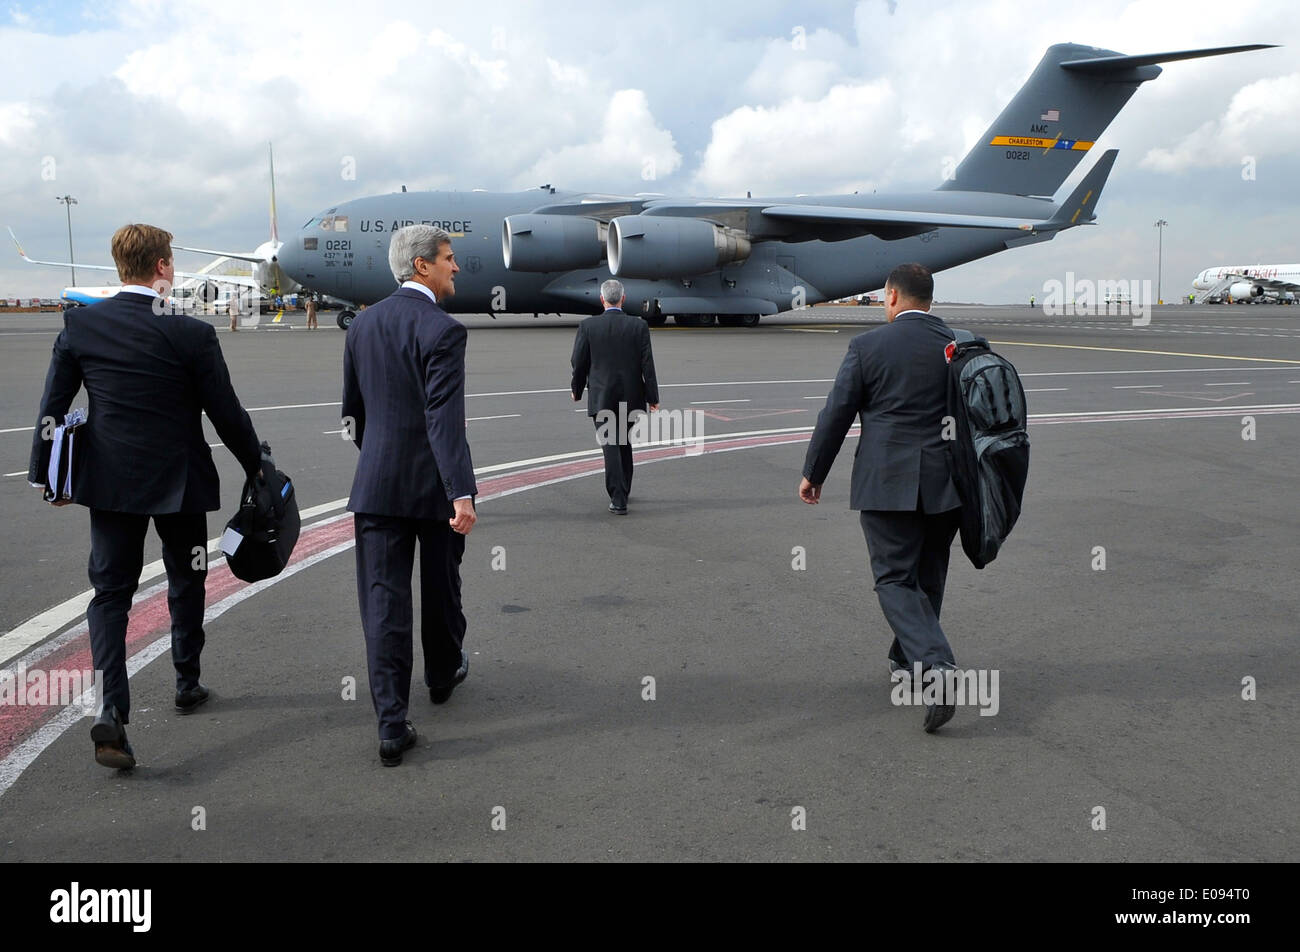 Secretary Kerry Approaches C-17 Flying Him from Ethiopia to South Sudan - Stock Image